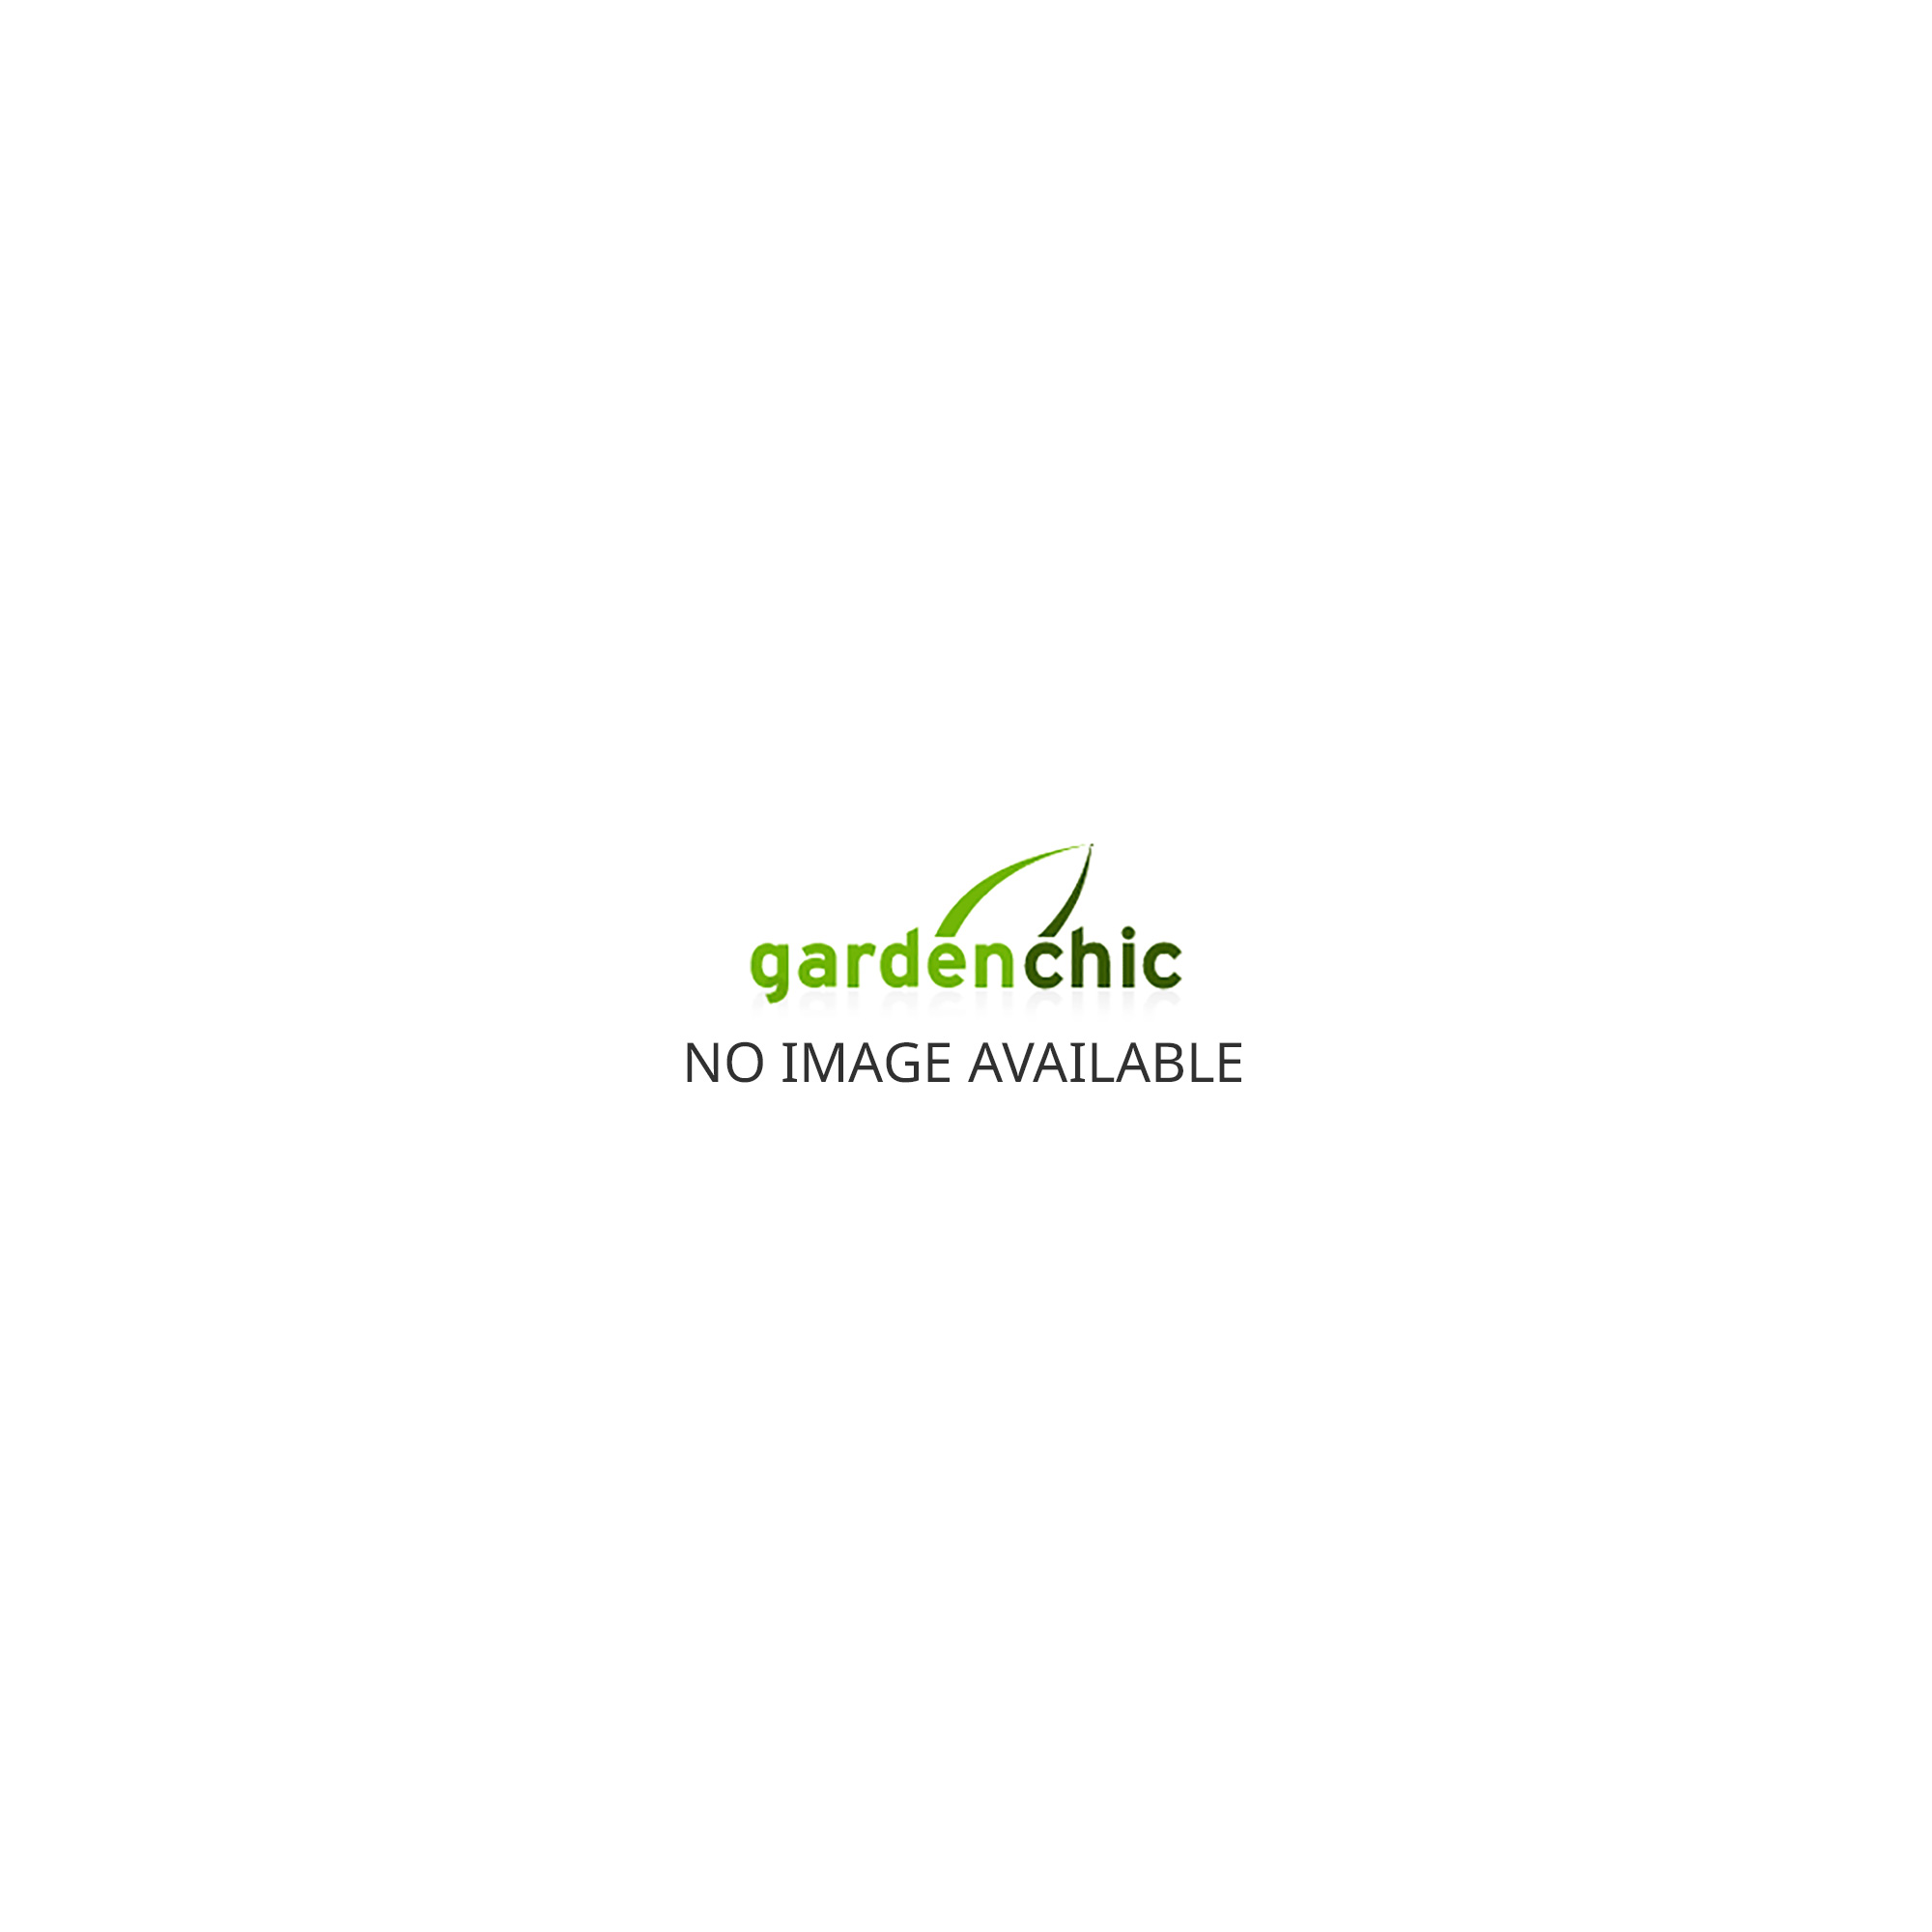 Haemmerlin Vibrante Pick Up 110LTR Polypropylene Wheelbarrow – 2 Colours